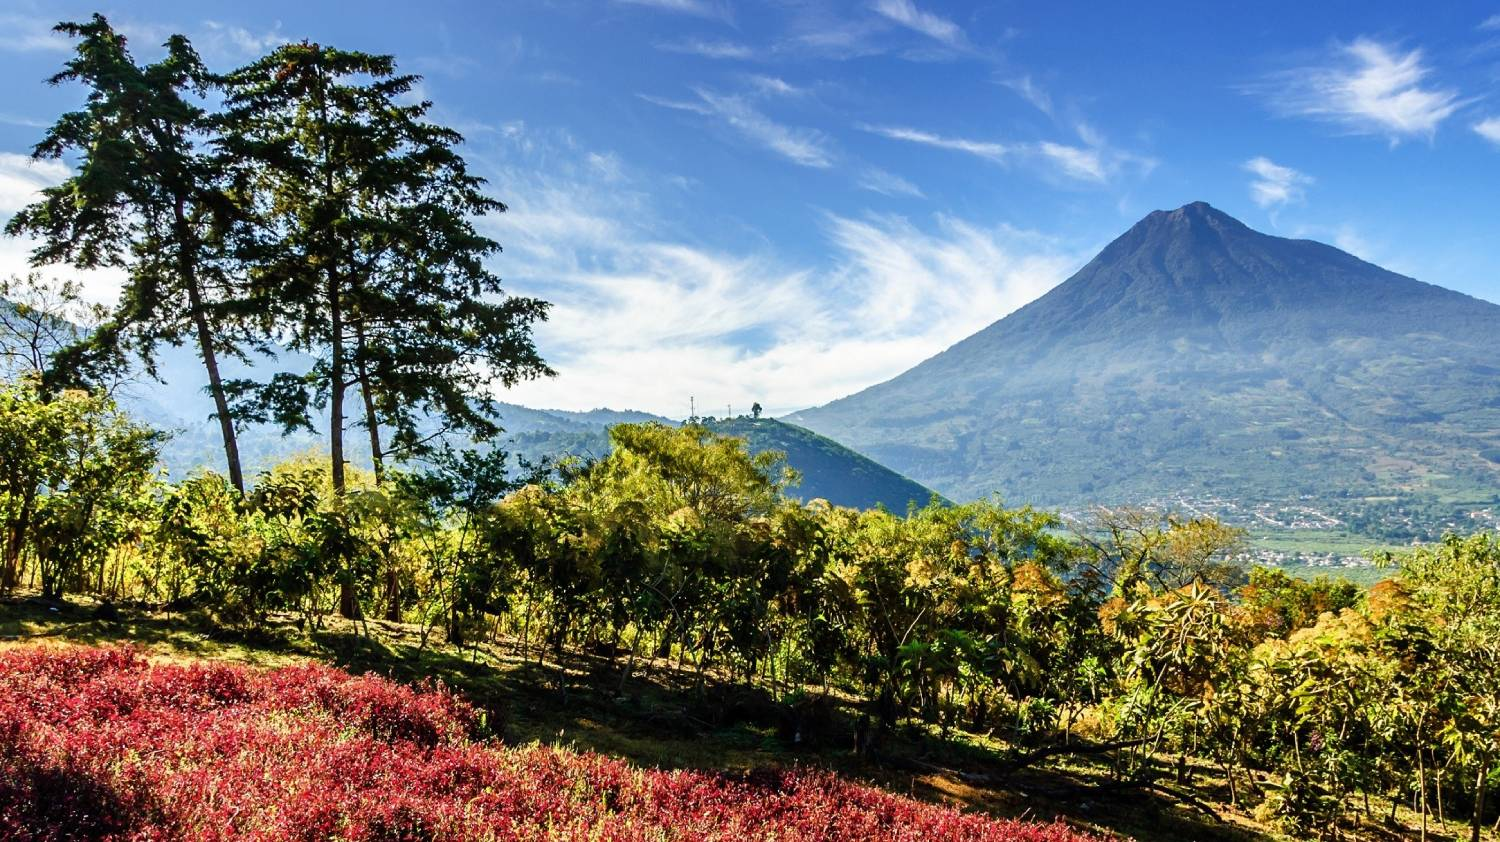 Guatemala - The Best Countries To Visit In Central America